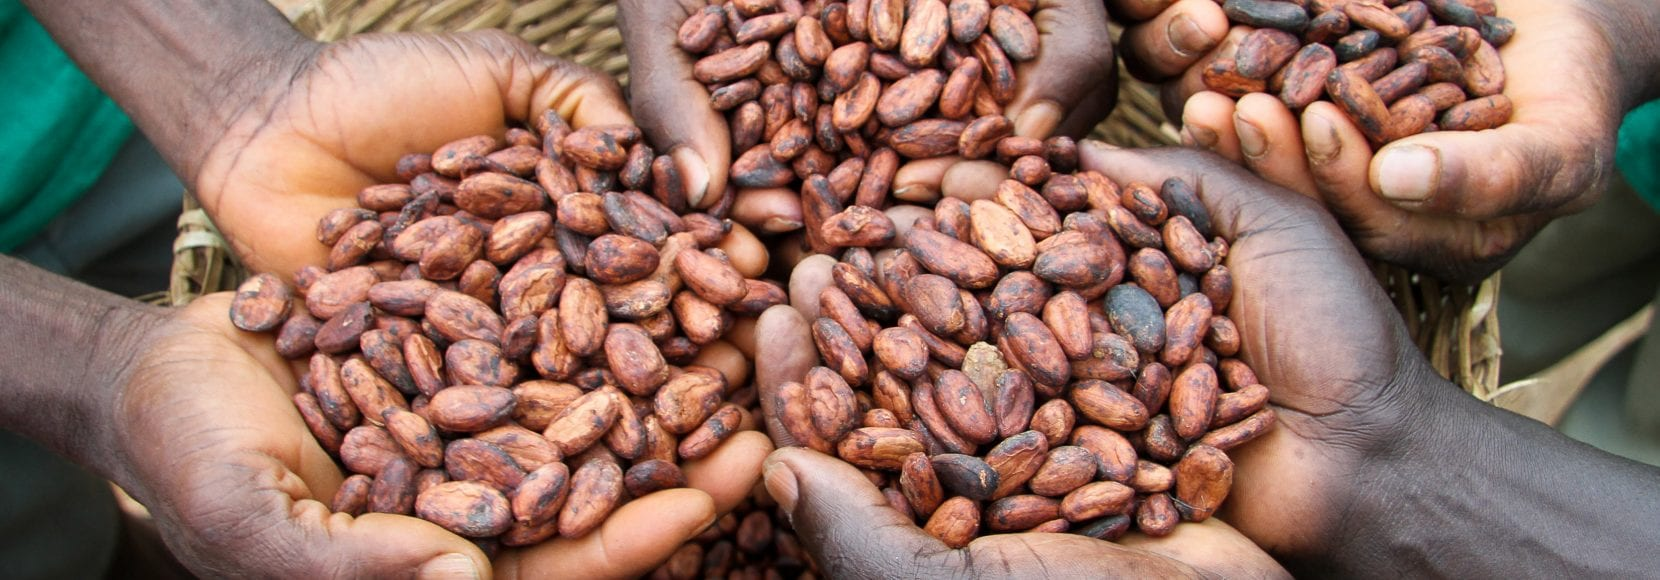 Corporate Sustainability Page Hero Image: Cocoa farmers holding dried cocoa beans in Ghana